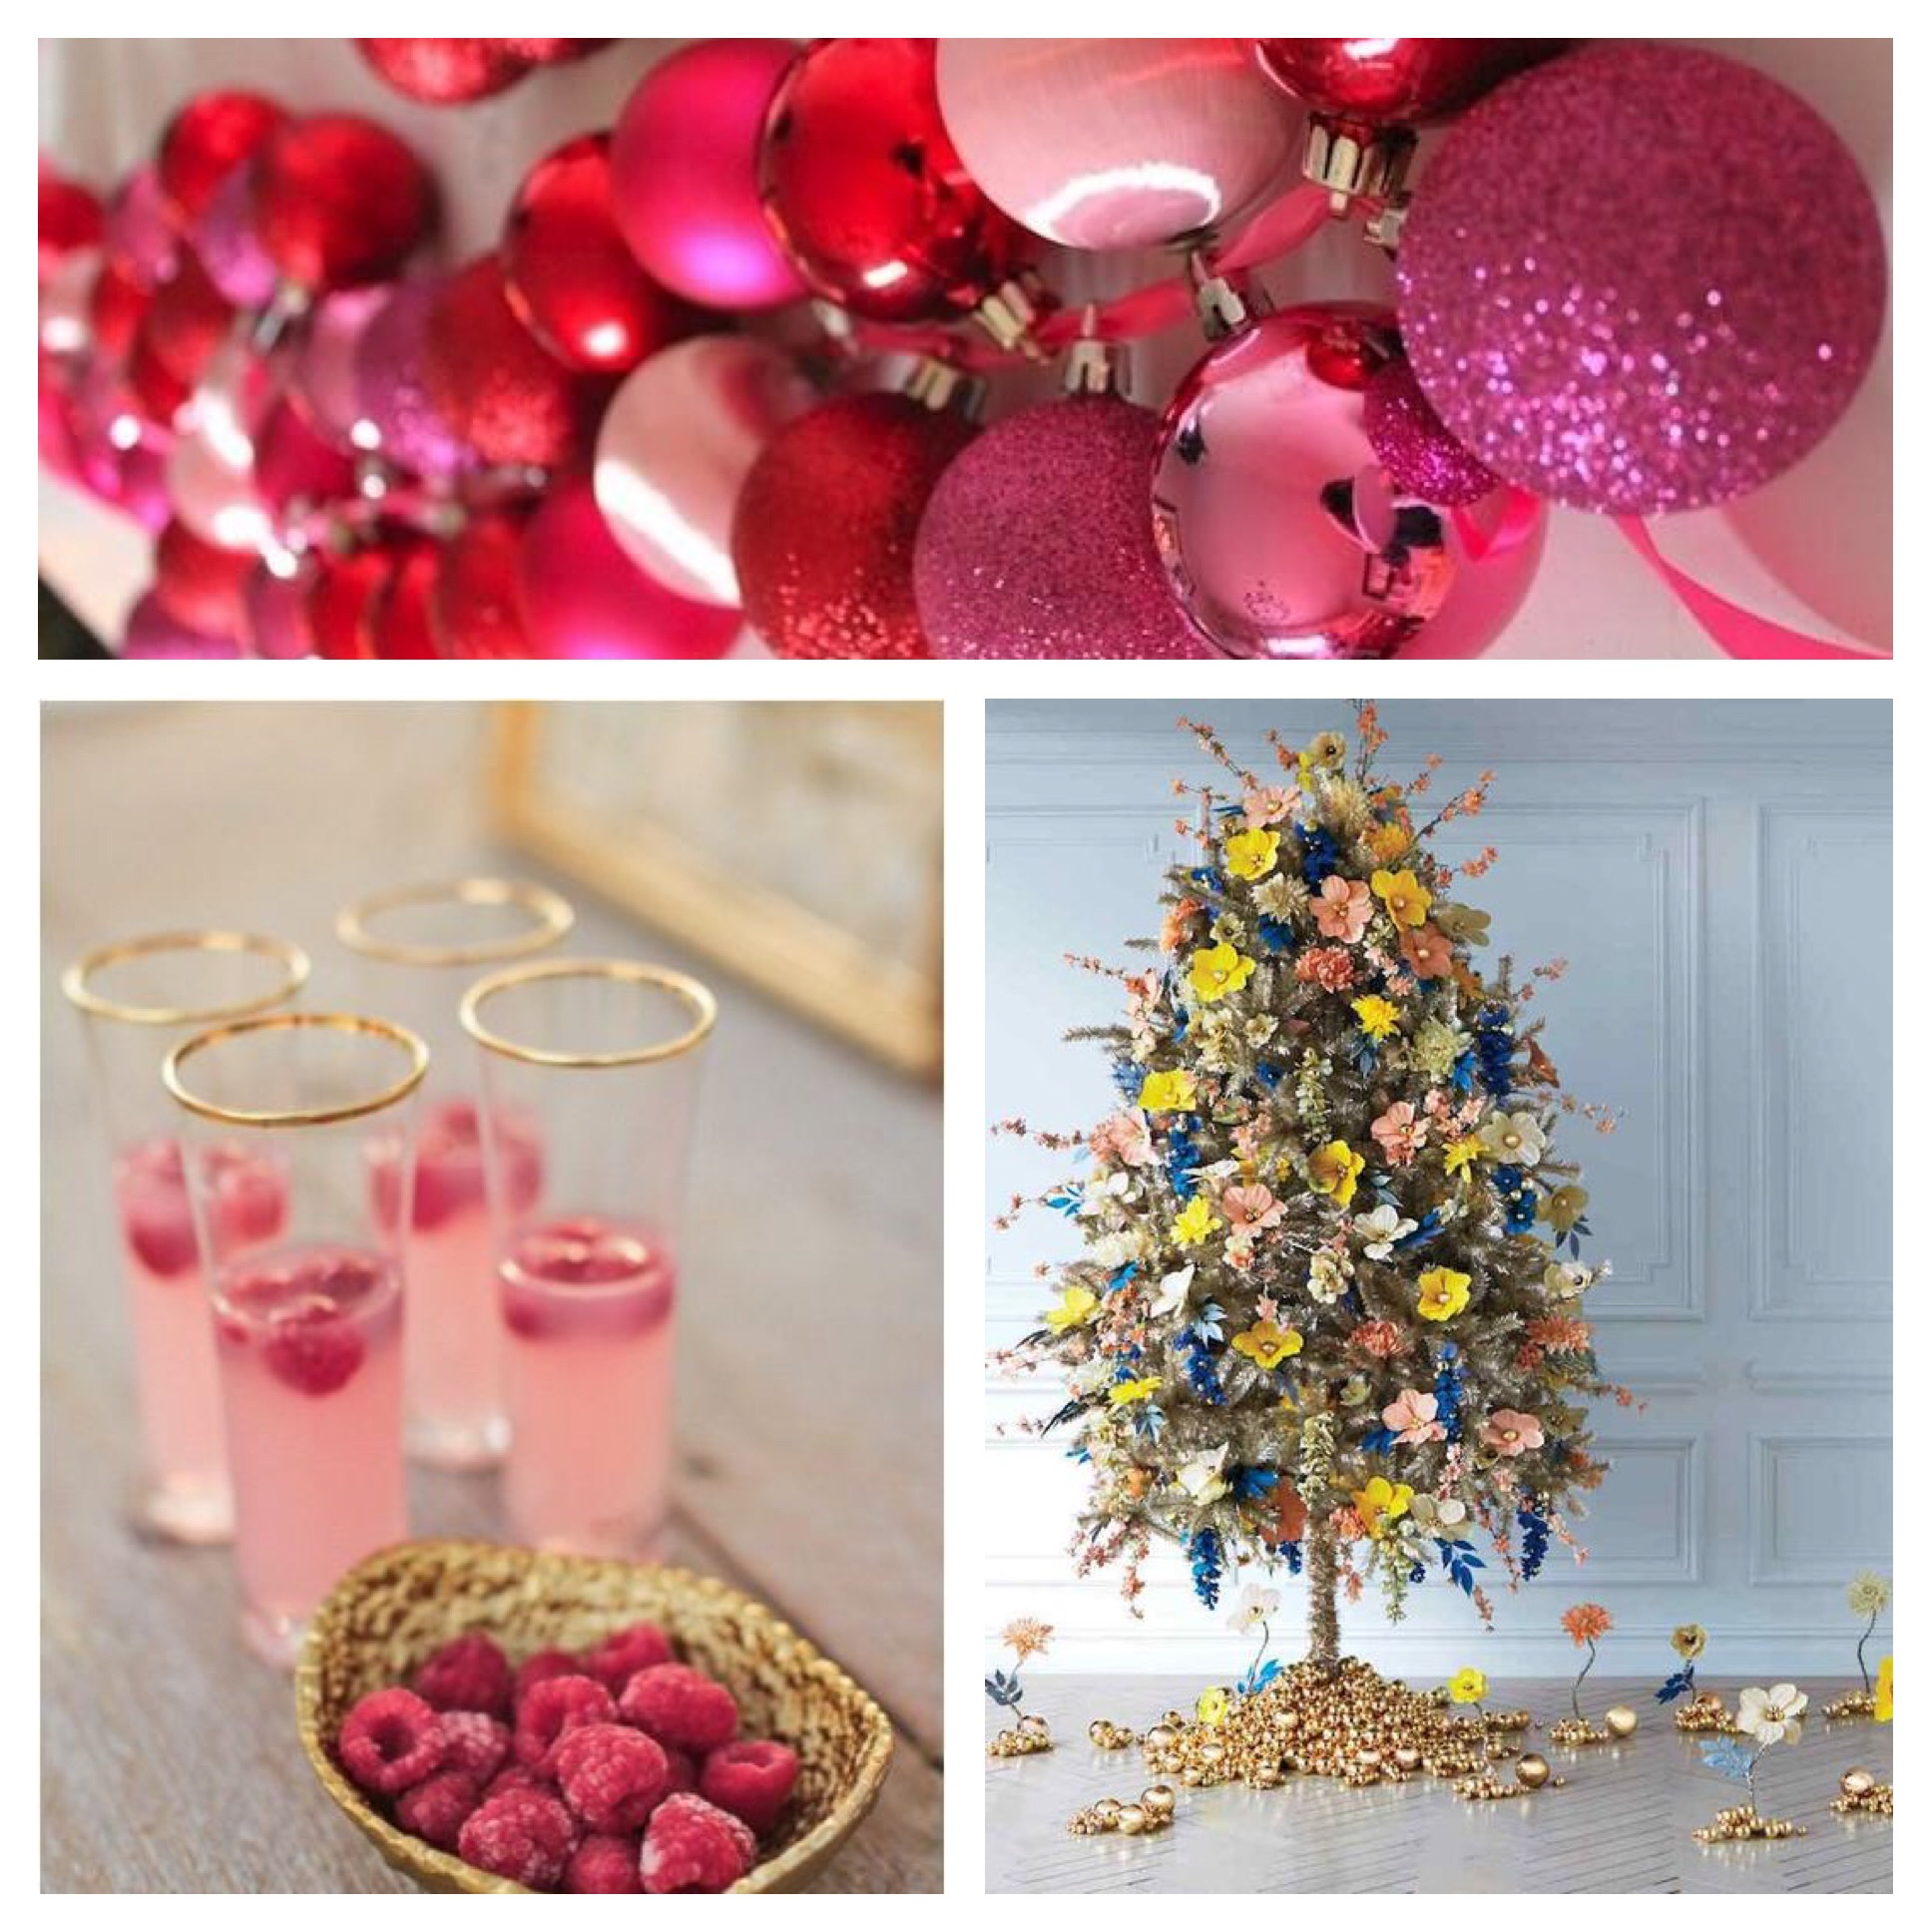 Decorating your home and enjoying the holidays